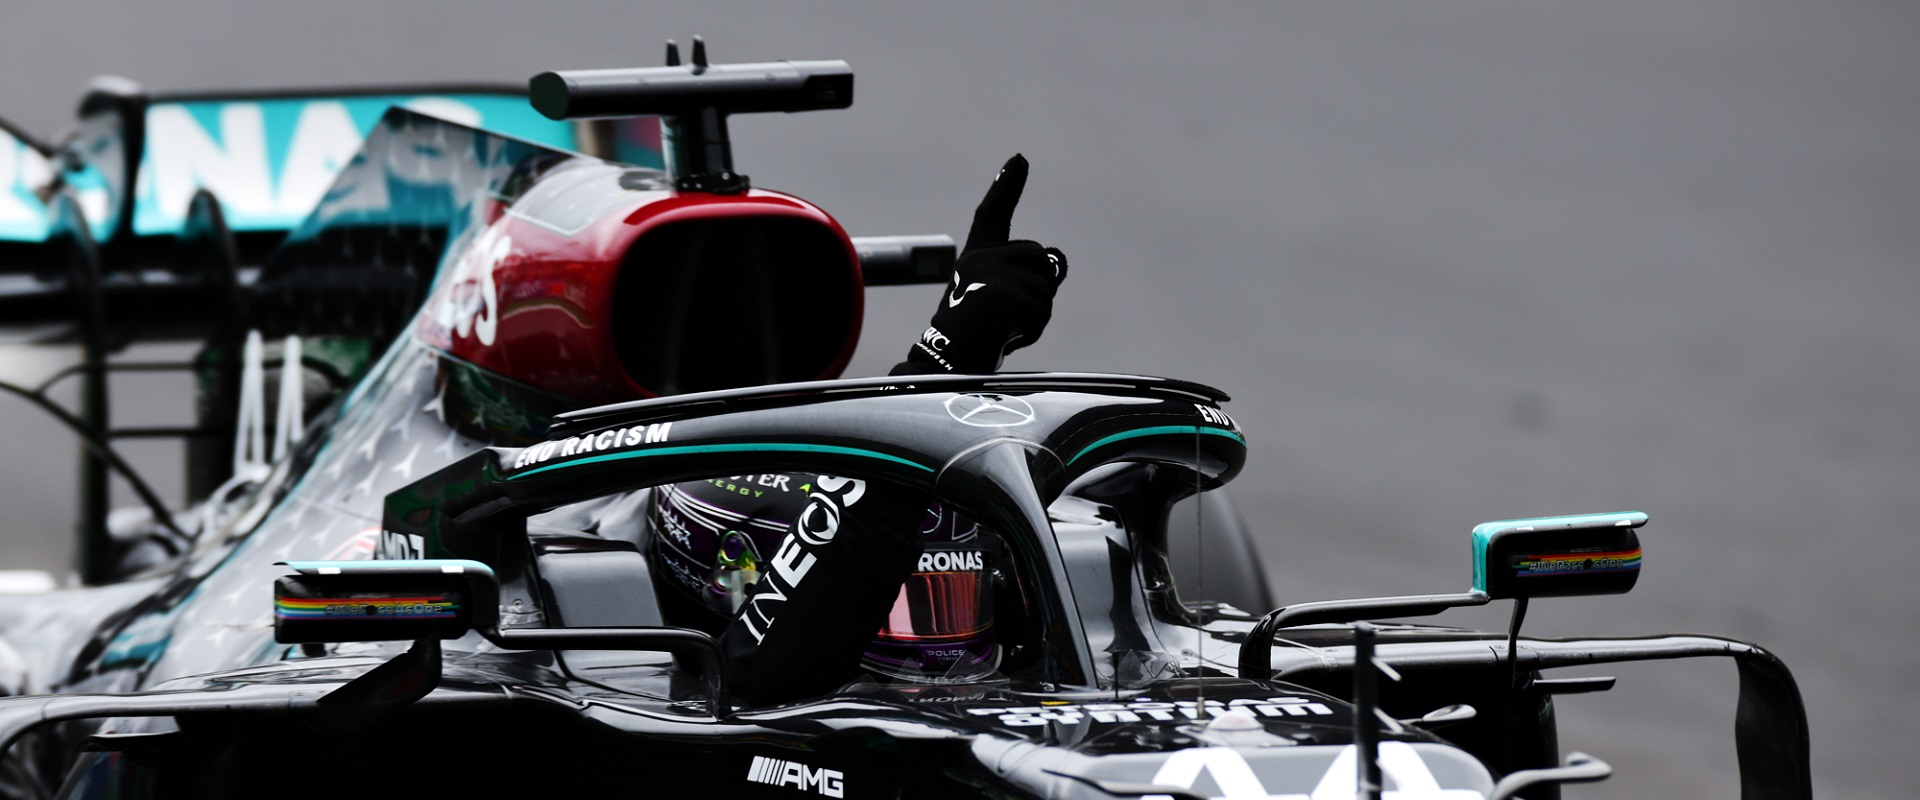 LEWIS HAMILTON MAKES HISTORY AT THE F1 ONCE AGAIN